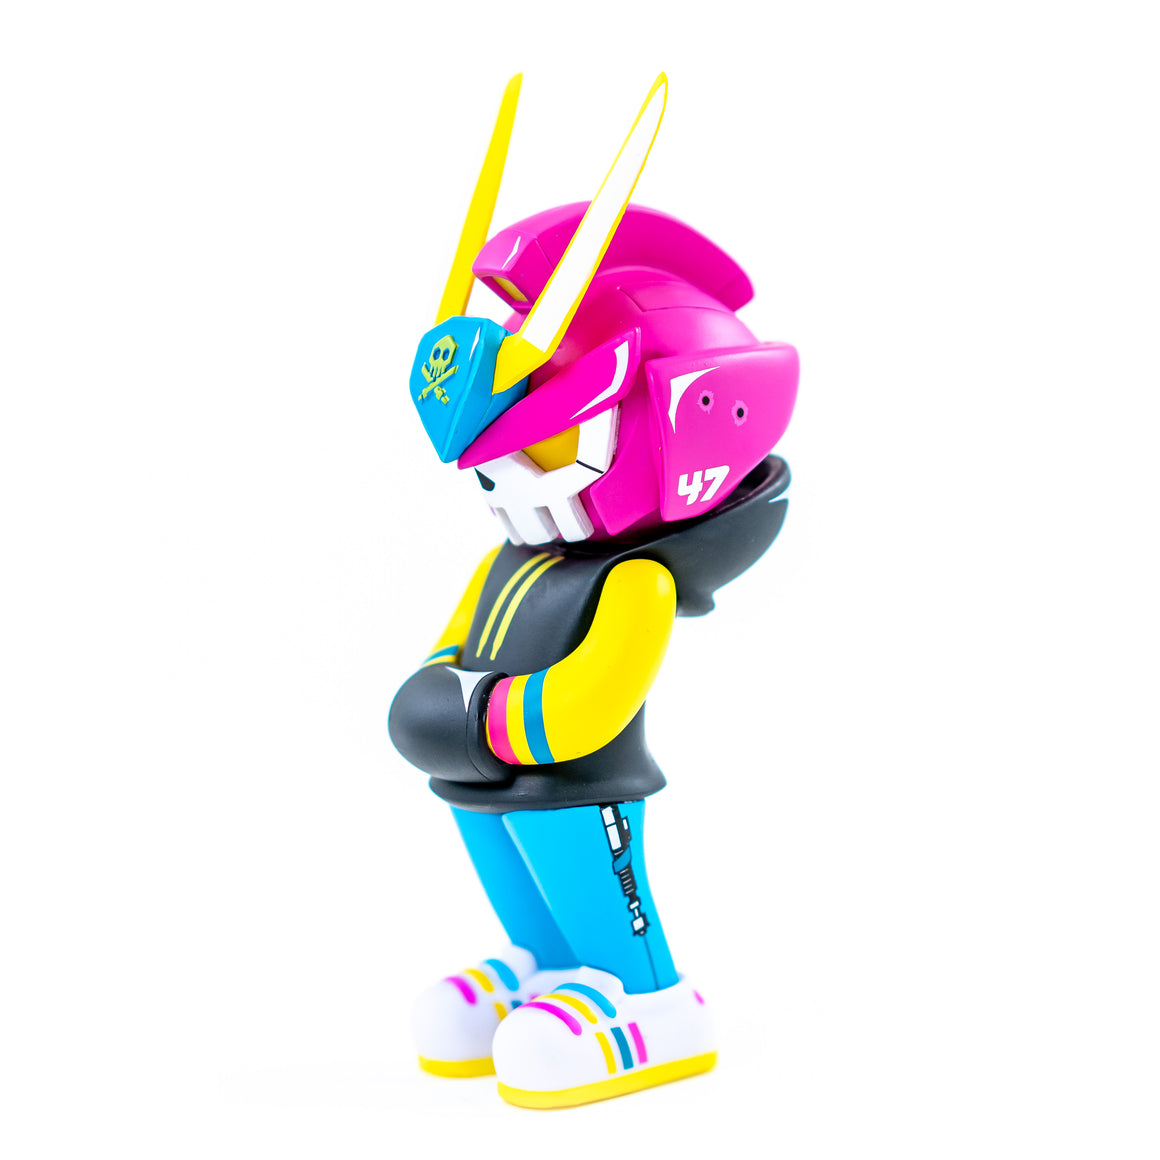 Pirateq-47 Neo-Tokyo Pink TEQ 63 Toy Figure by Quiccs x SergAndDestroy